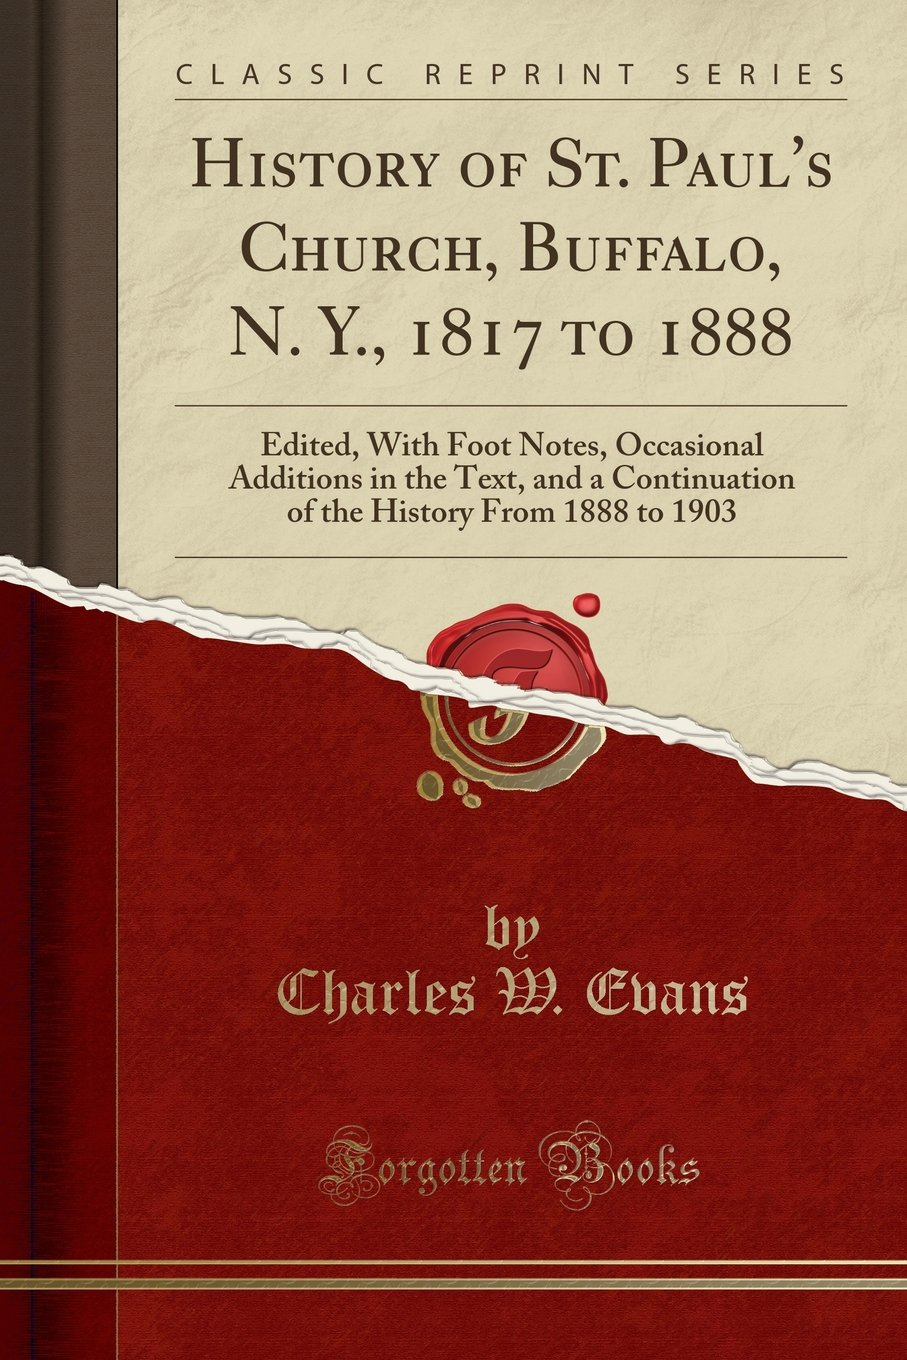 Download History of St. Paul's Church, Buffalo, N. Y., 1817 to 1888: Edited, With Foot Notes, Occasional Additions in the Text, and a Continuation of the History From 1888 to 1903 (Classic Reprint) pdf epub